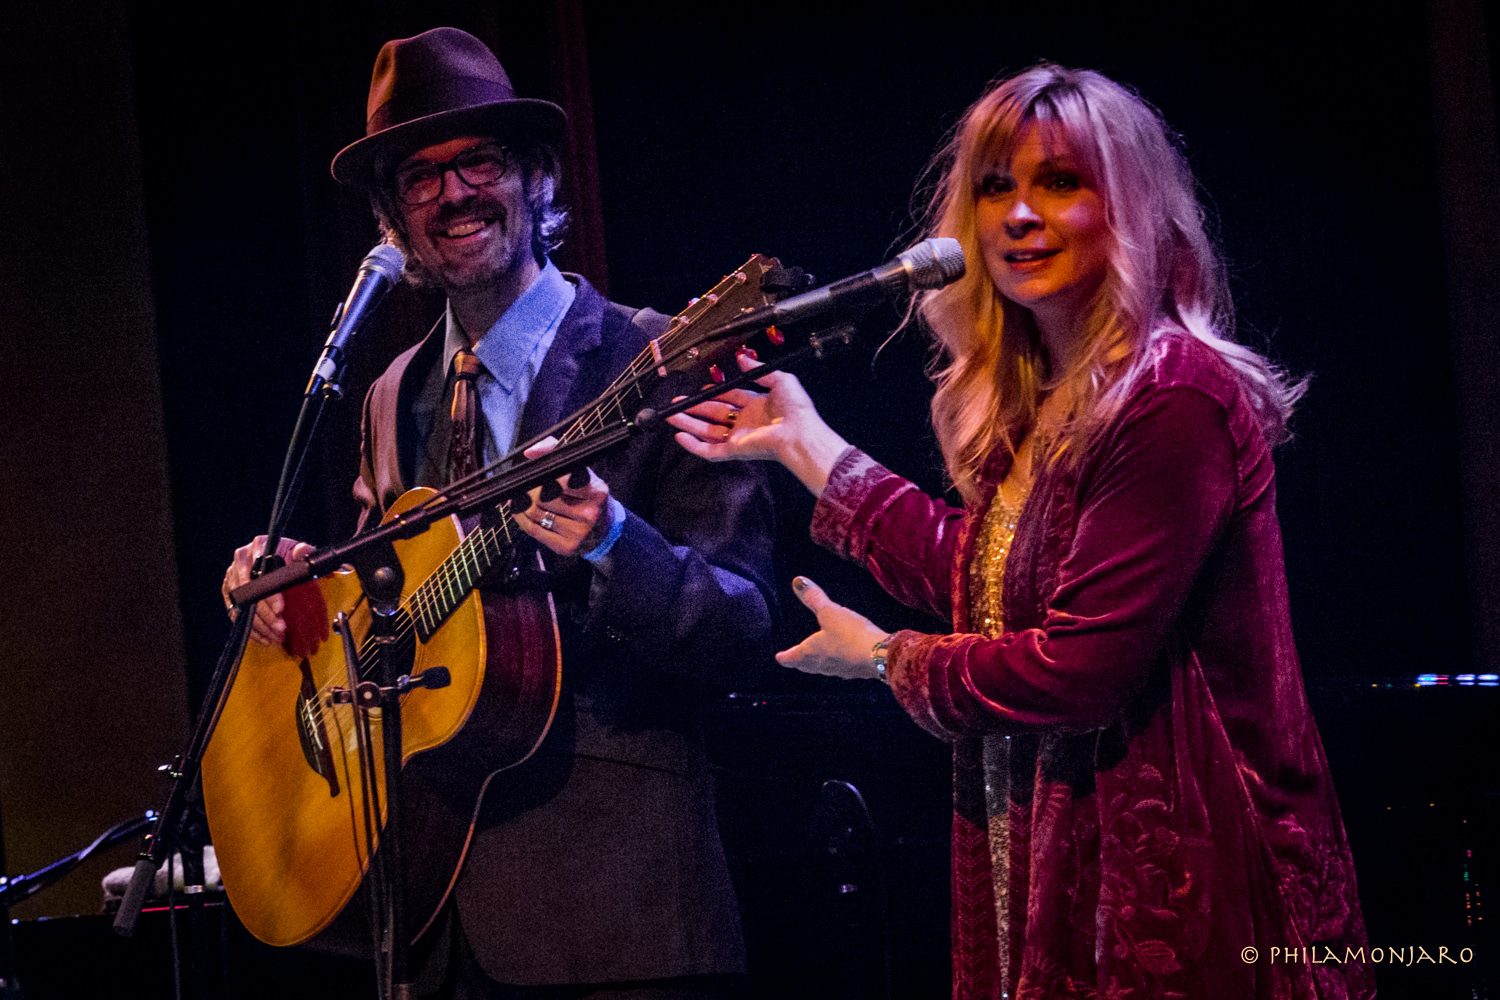 Review / Photos | Over the Rhine  @ Old Town School of Folk Music 12/31/16